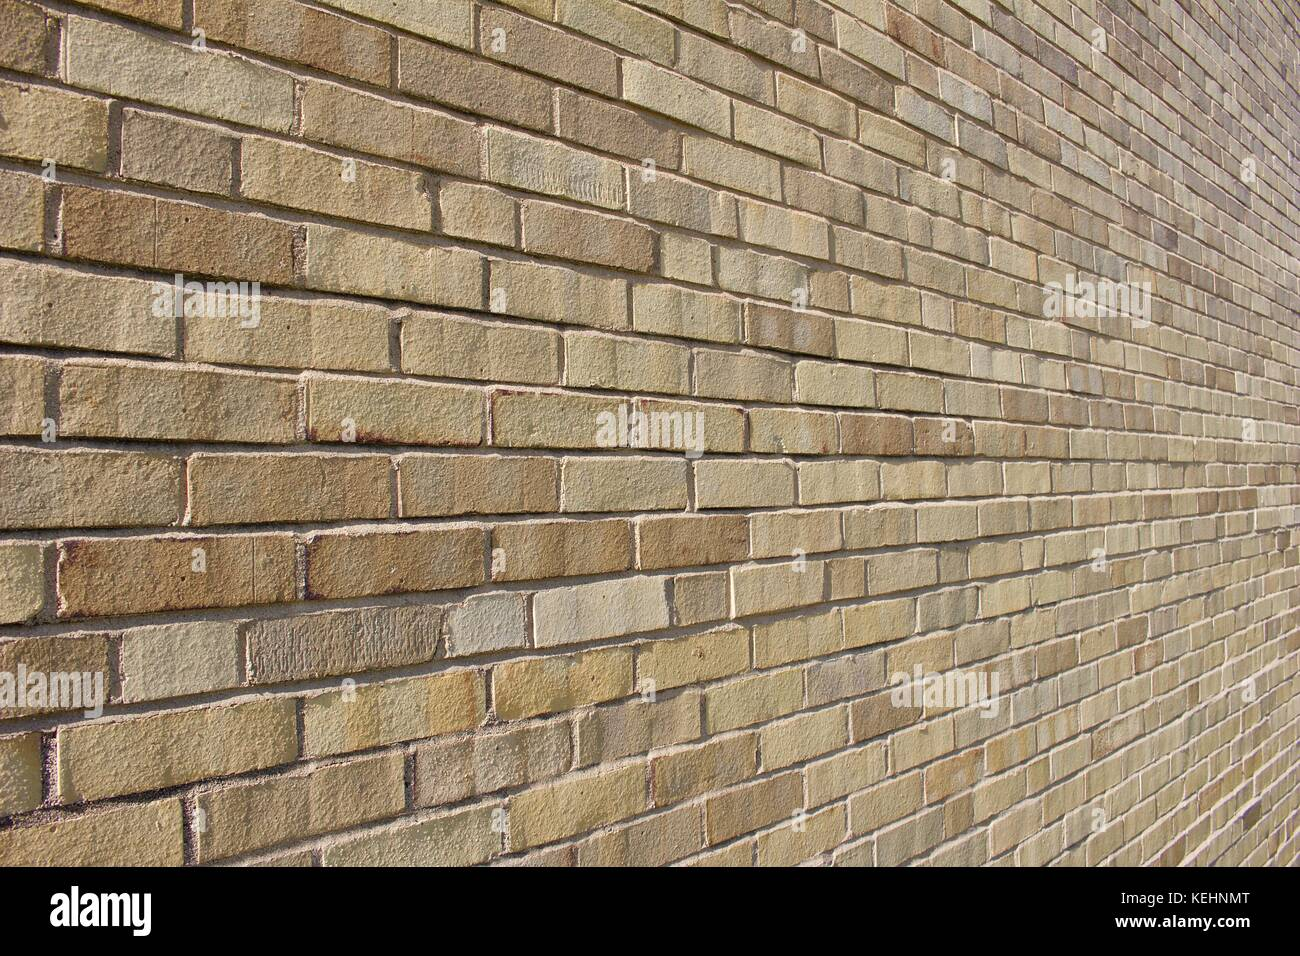 Close up angled view of a brightly sunlit beige and tan colored modern brick wall background. - Stock Image